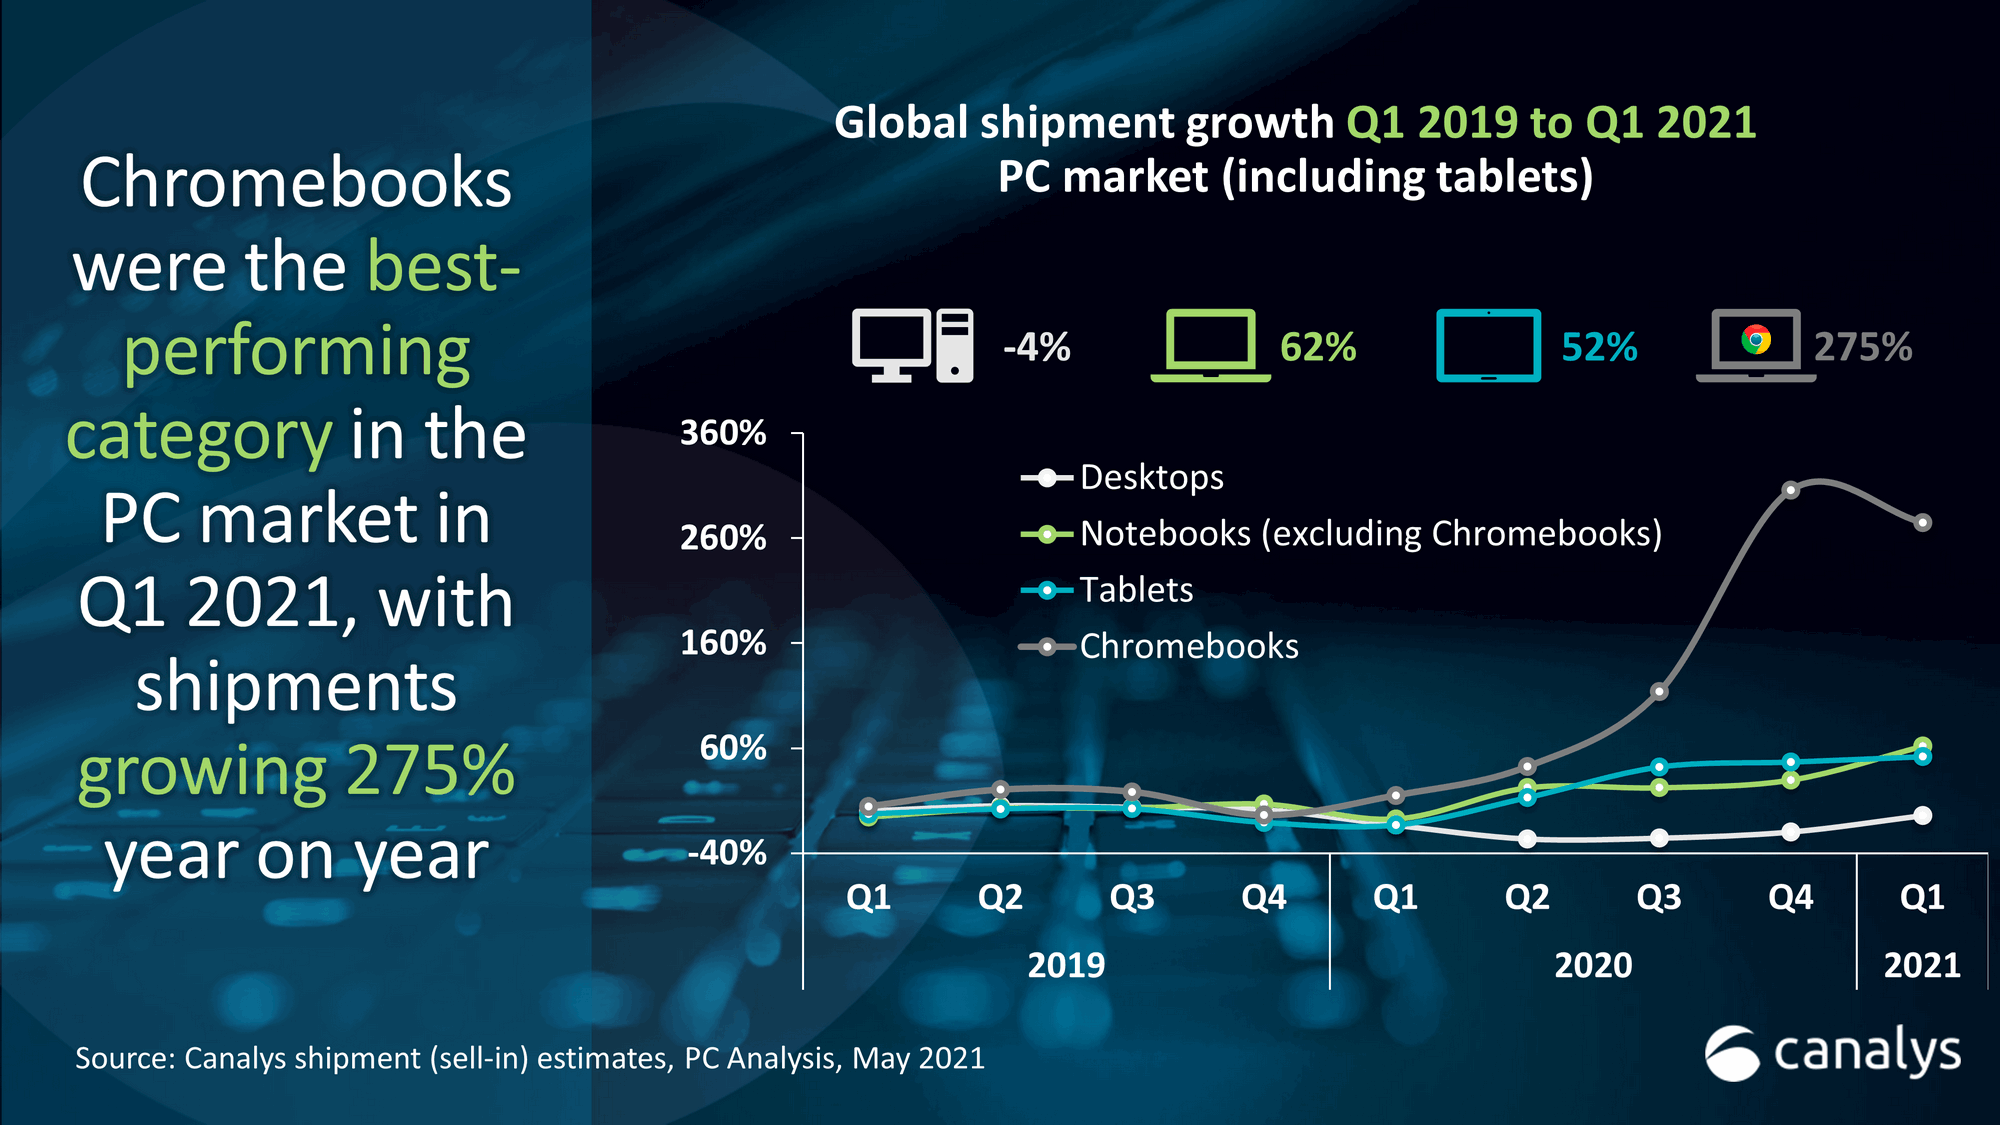 Canalys: Chromebooks lead PC revival in Q1 2021 with 275% growth